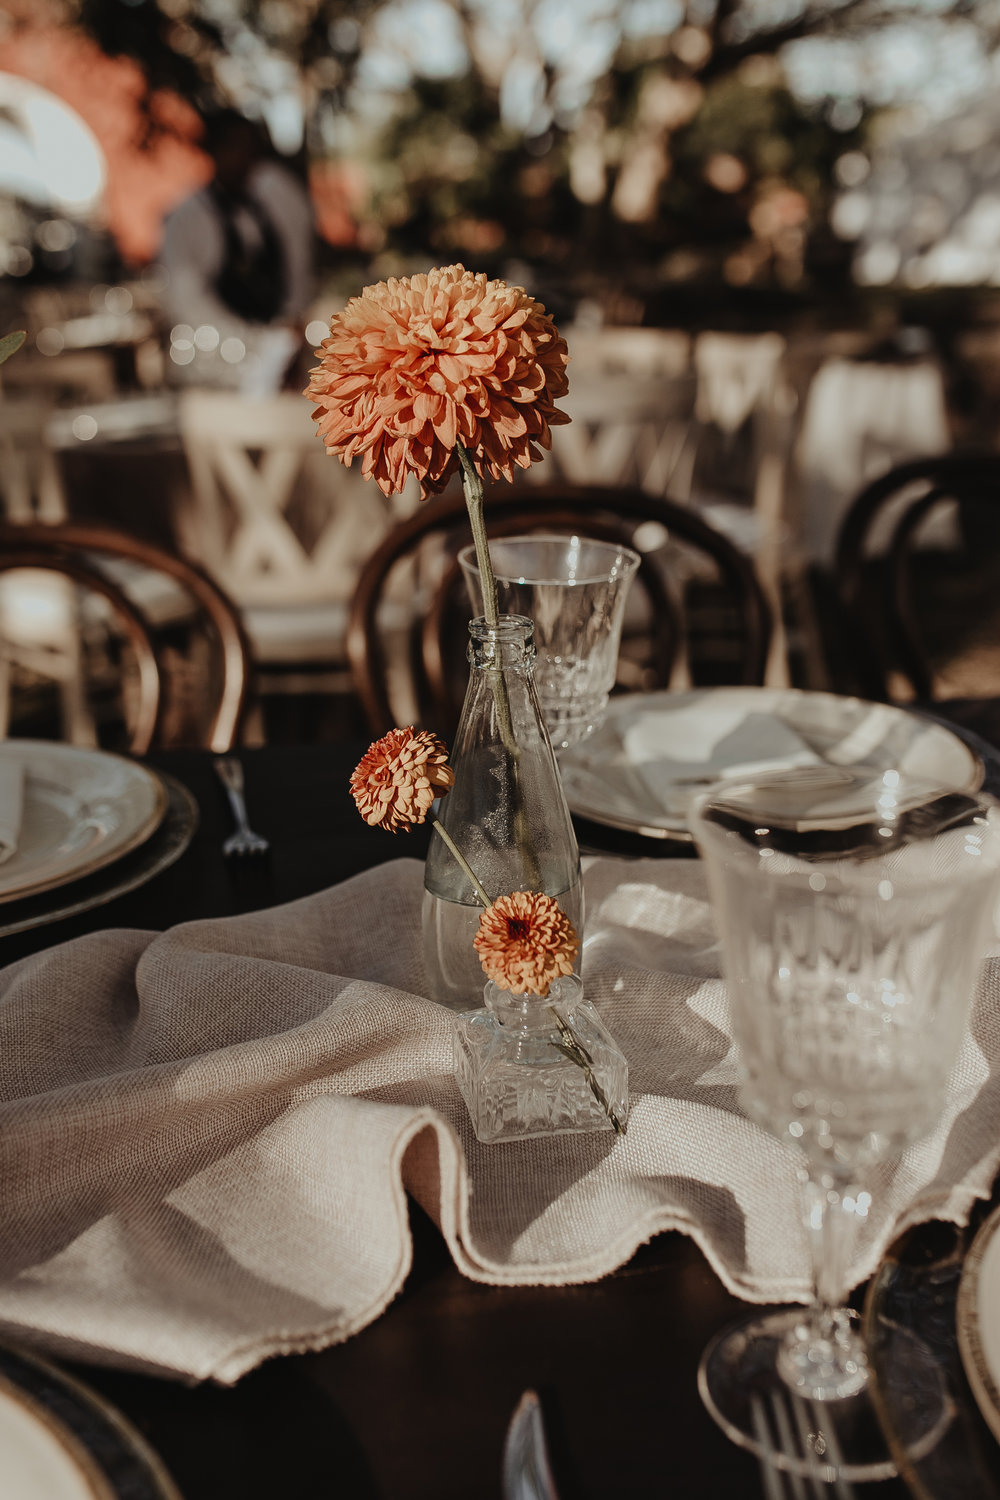 0261p&a_Hacienda__WeddingDestination_Weddingmerida_BodaMexico_FotografoDeBodas_WeddingGay.jpg